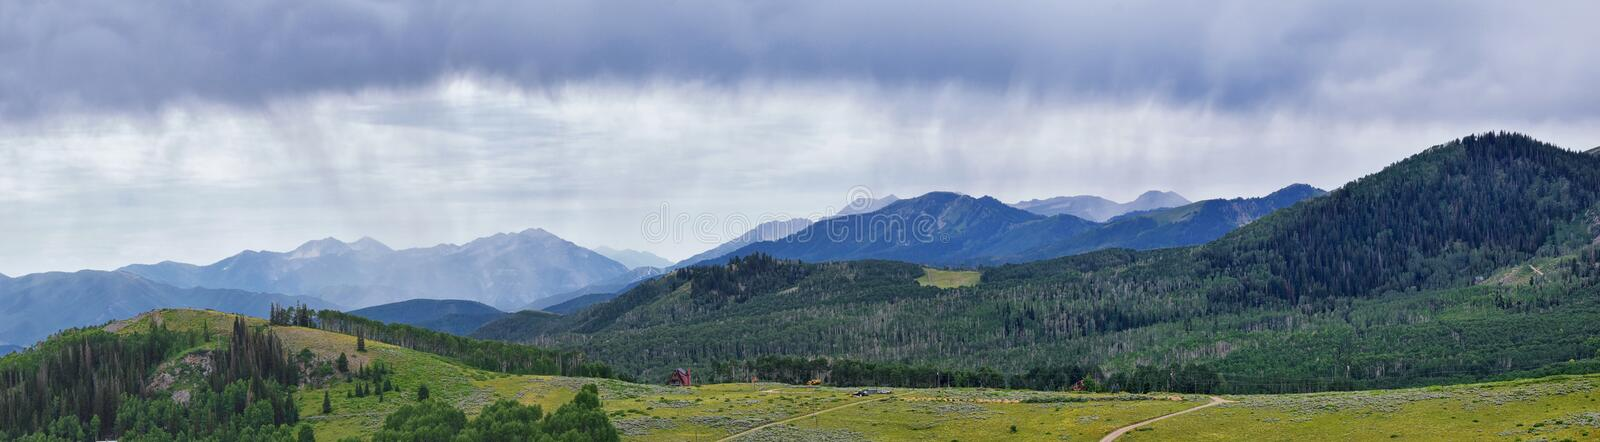 Guardsman Pass views of Panoramic Landscape of the Pass, Midway and Heber Valley along the Wasatch Front Rocky Mountains, Summer F. Orests, Clouds and Rainstorm royalty free stock photo